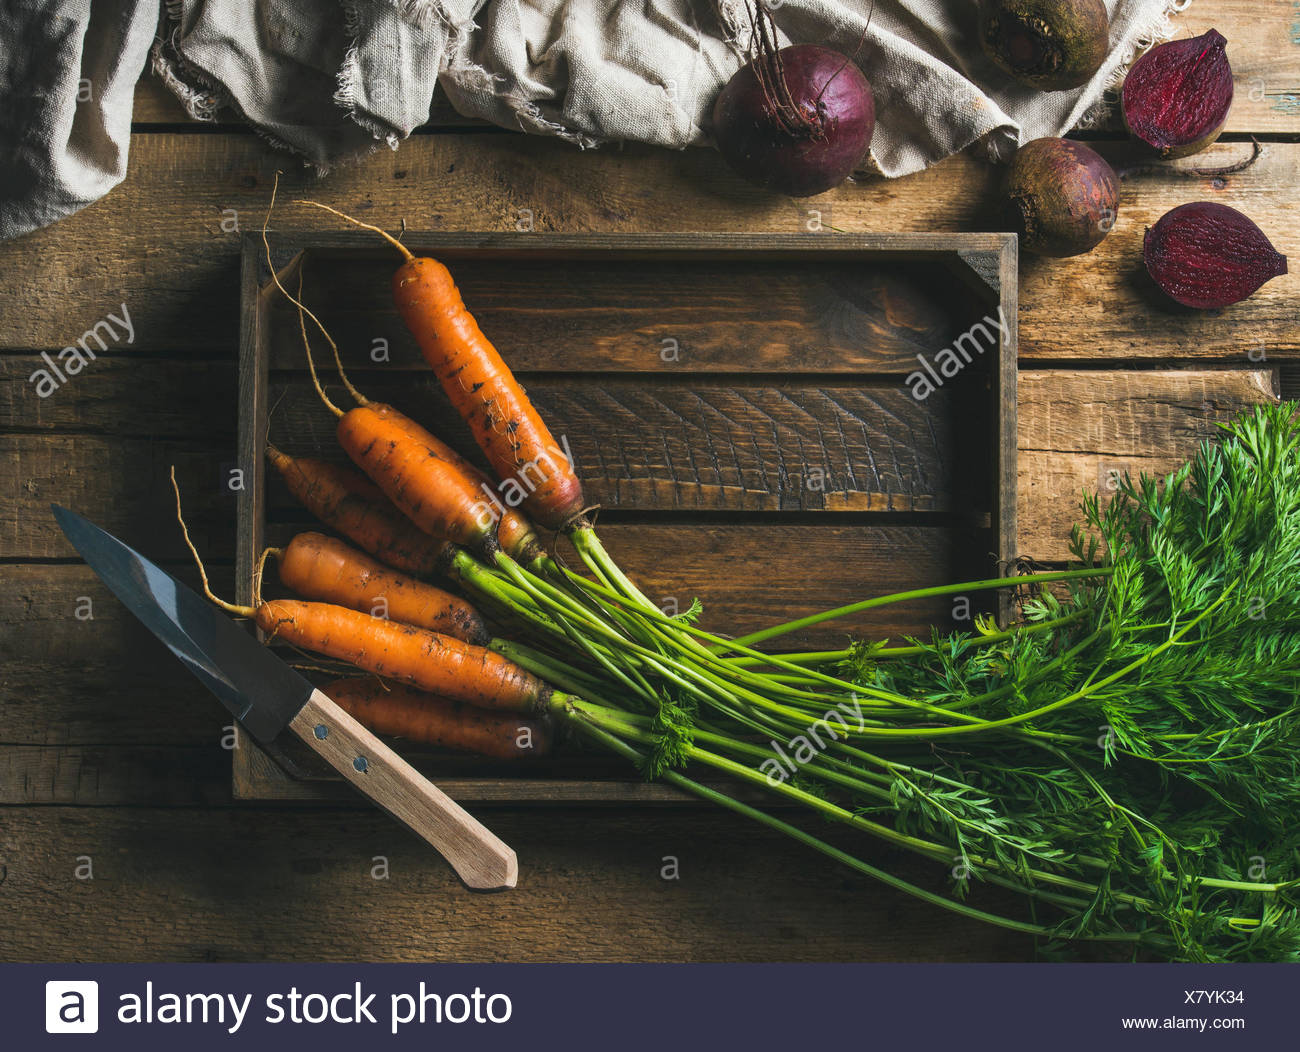 Healthy food cooking background. Vegetable ingredients. Fresh garden carrots and beetroots in wooden tray over rustic wooden bac - Stock Image